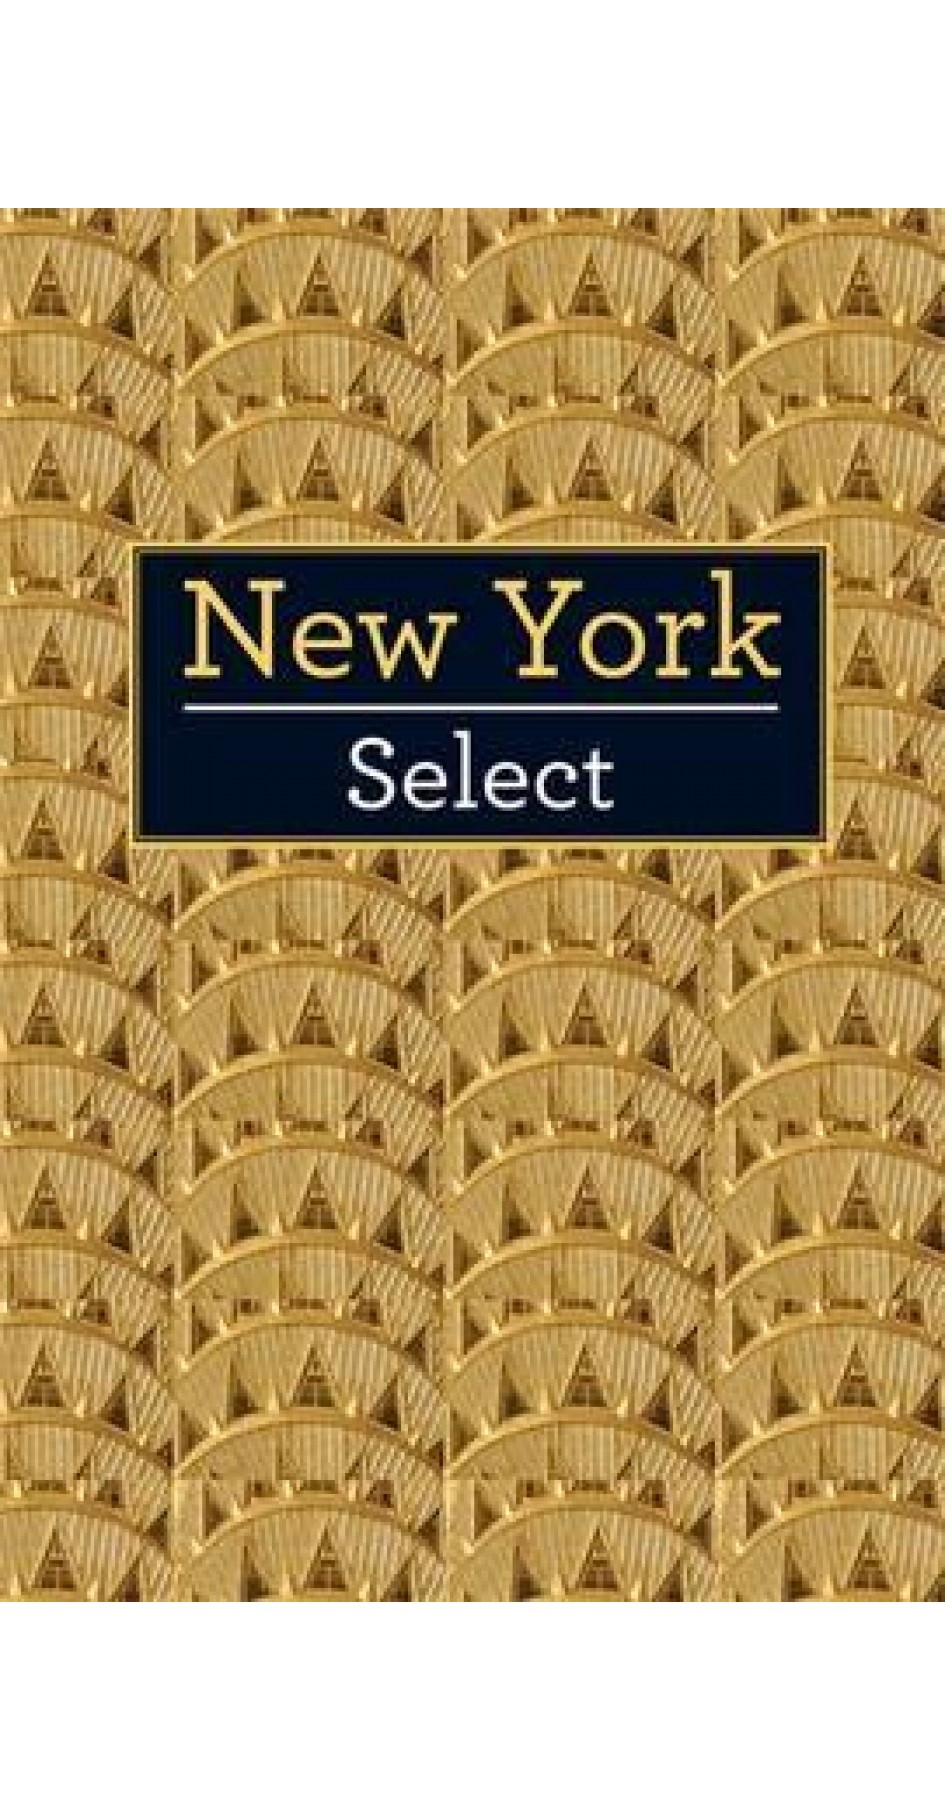 New York Select Insight Guides